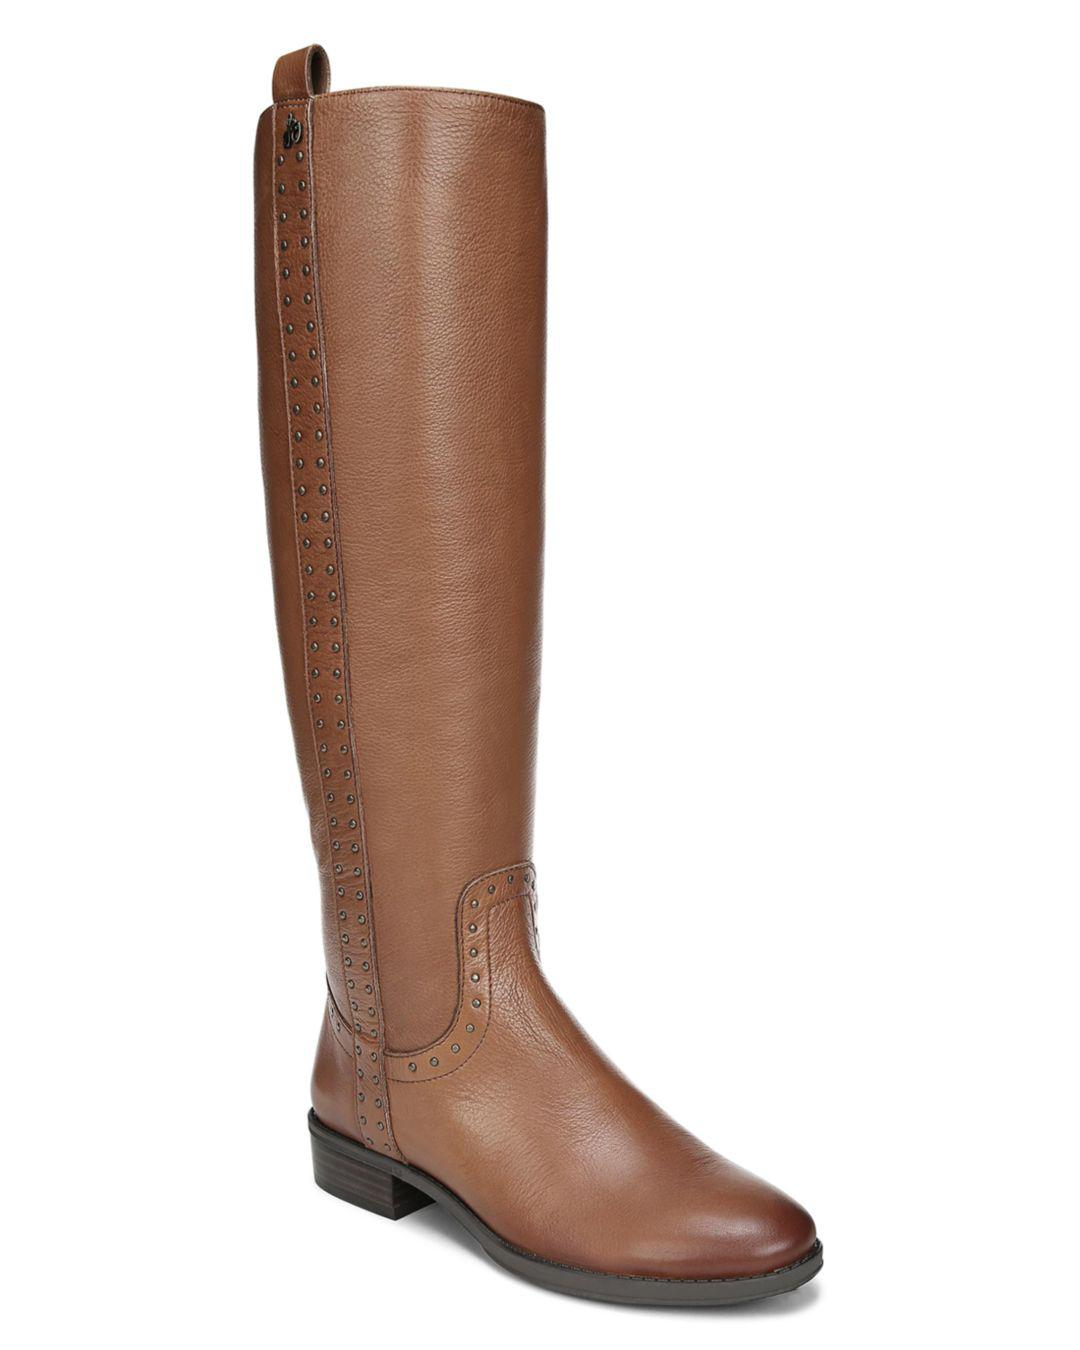 140c16bc94ee83 Sam Edelman Women s Prina Round Toe Tall Leather Boots in Brown - Lyst